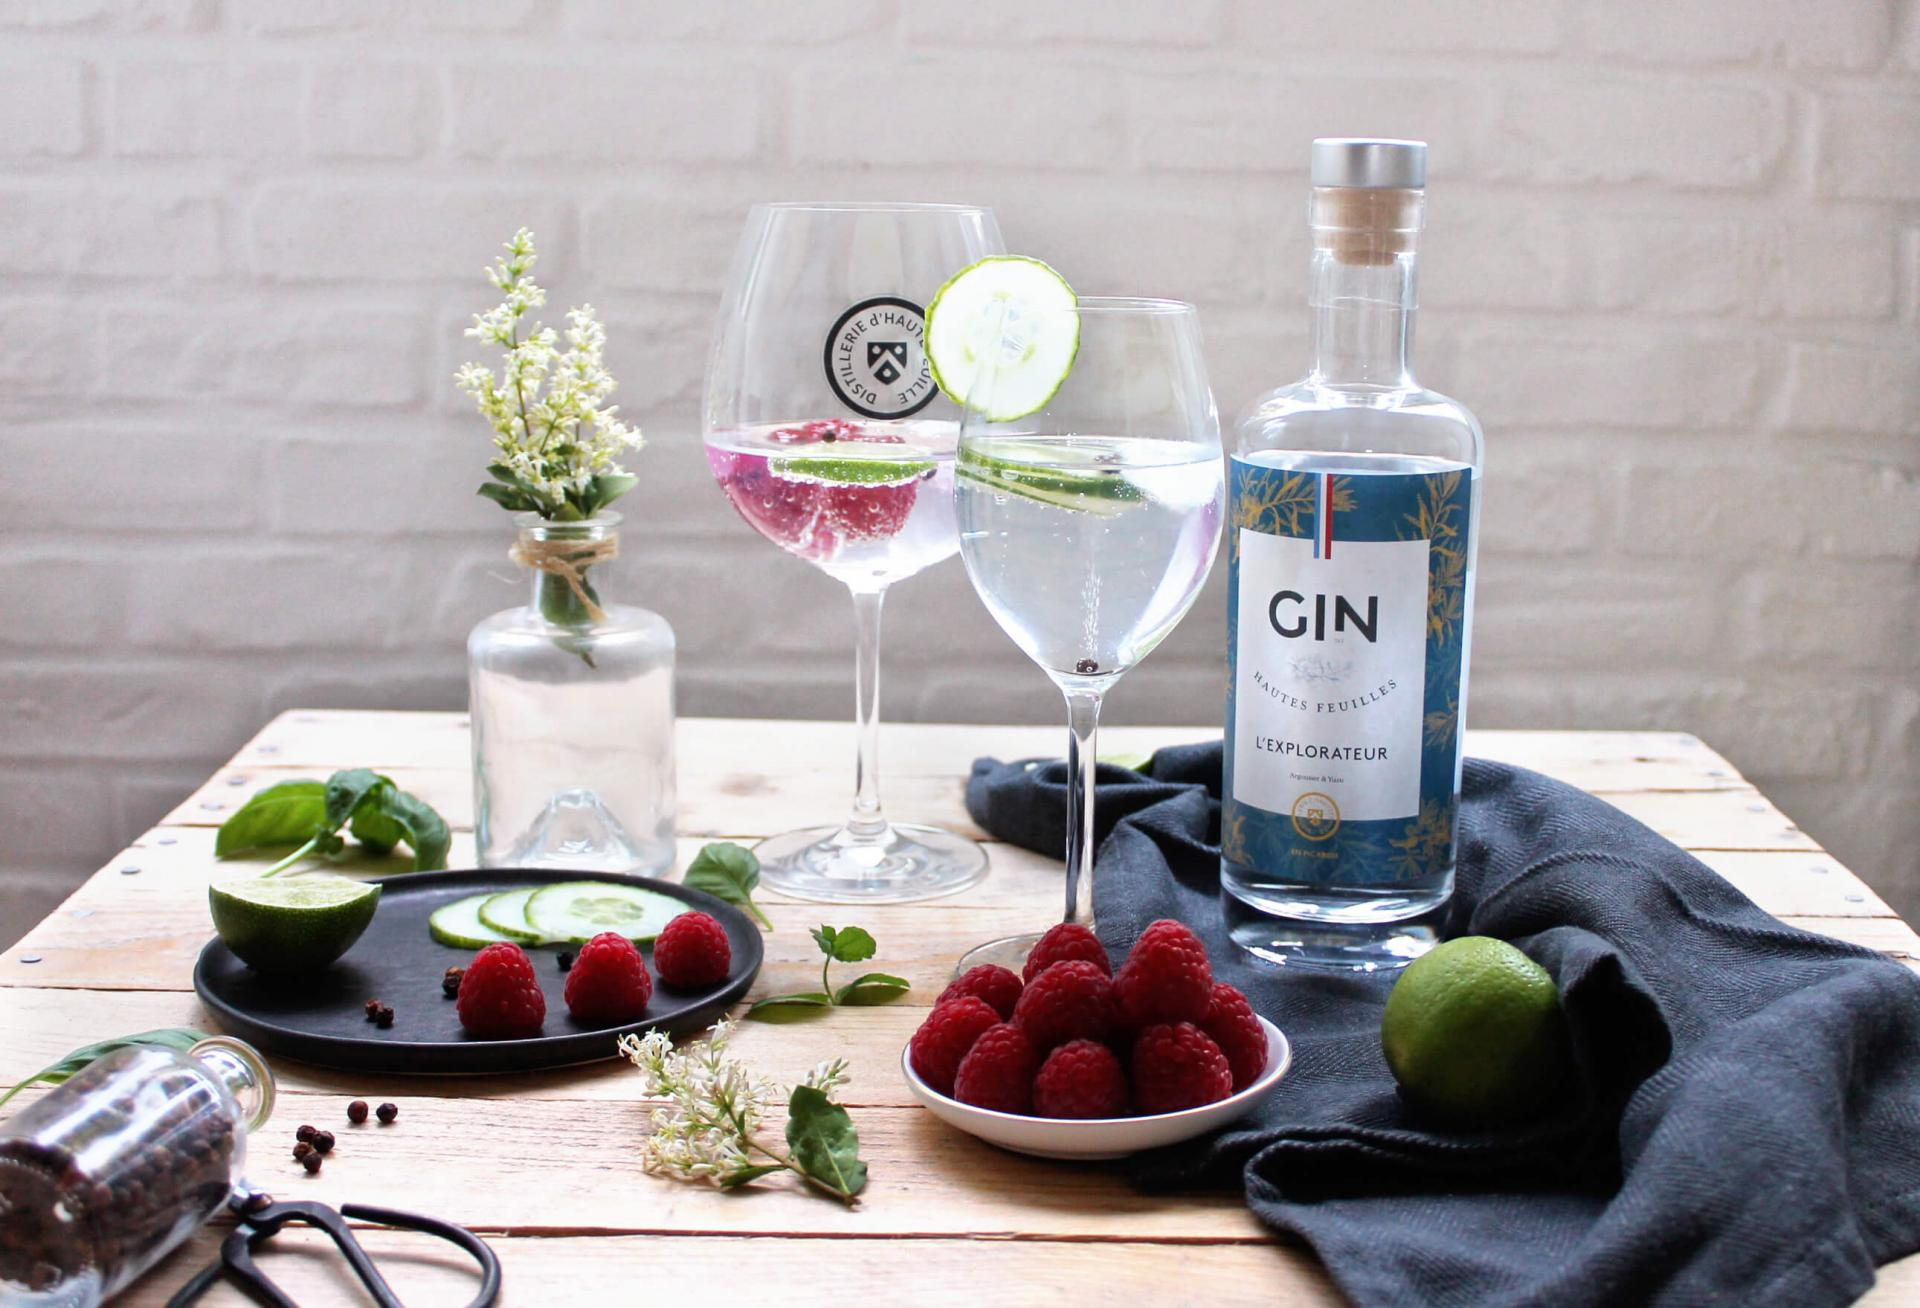 Gintonic dhautefeuille 4853